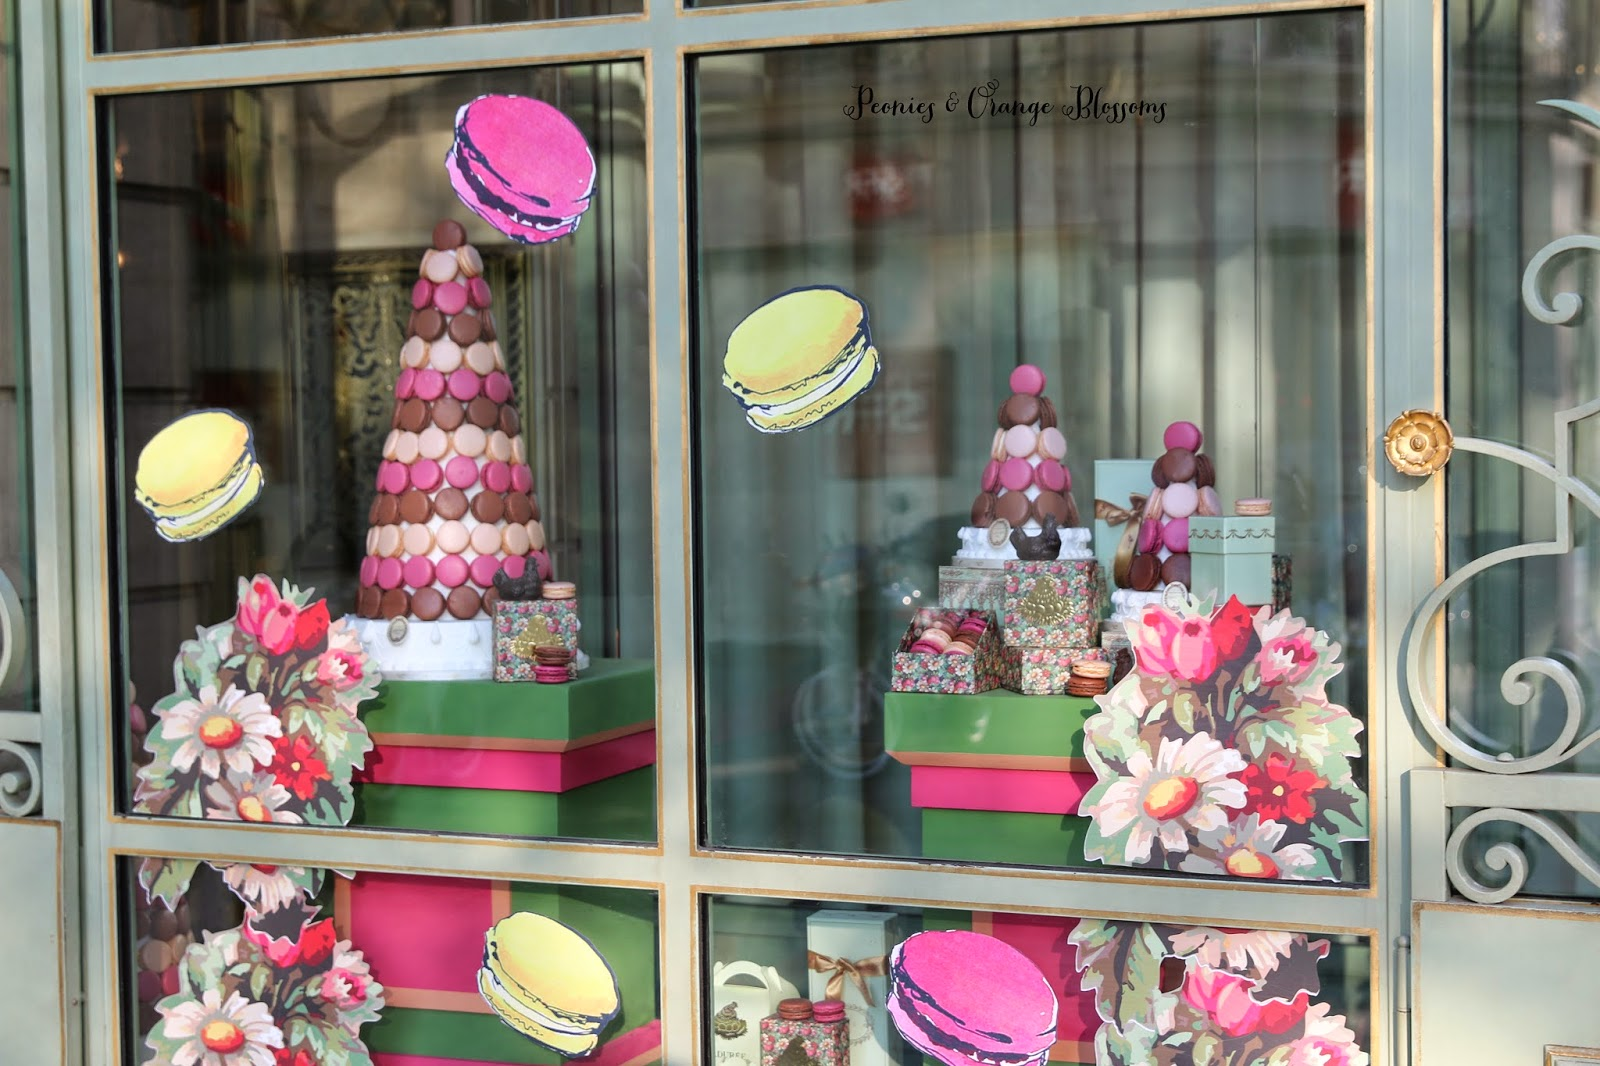 If you look closer, you can observe the chocolate chickens near the big towers of macarons. They were placed there to give a completed Easter form for the window display.